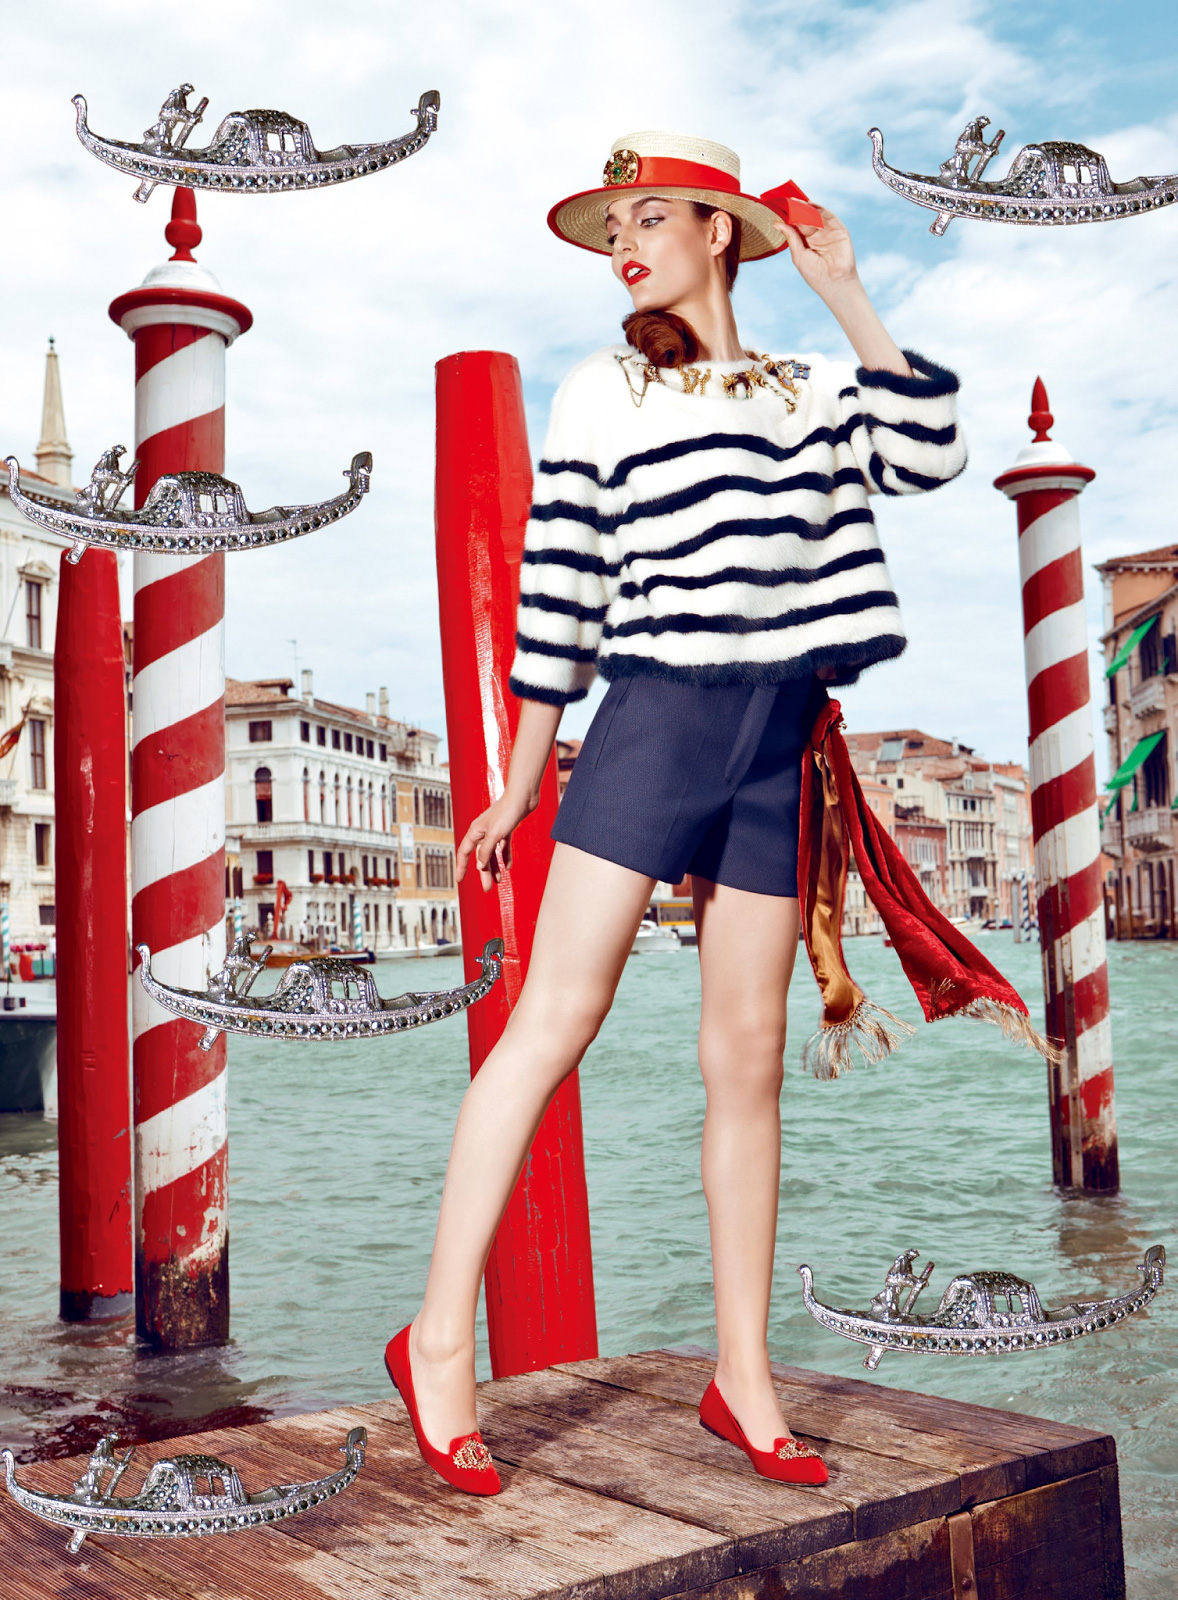 Zuzanna-Bijoch-by-Pierpaolo-Ferrari-for-Vogue-Japan-February-2014-(My-Fascination-with-Venice)-(3)